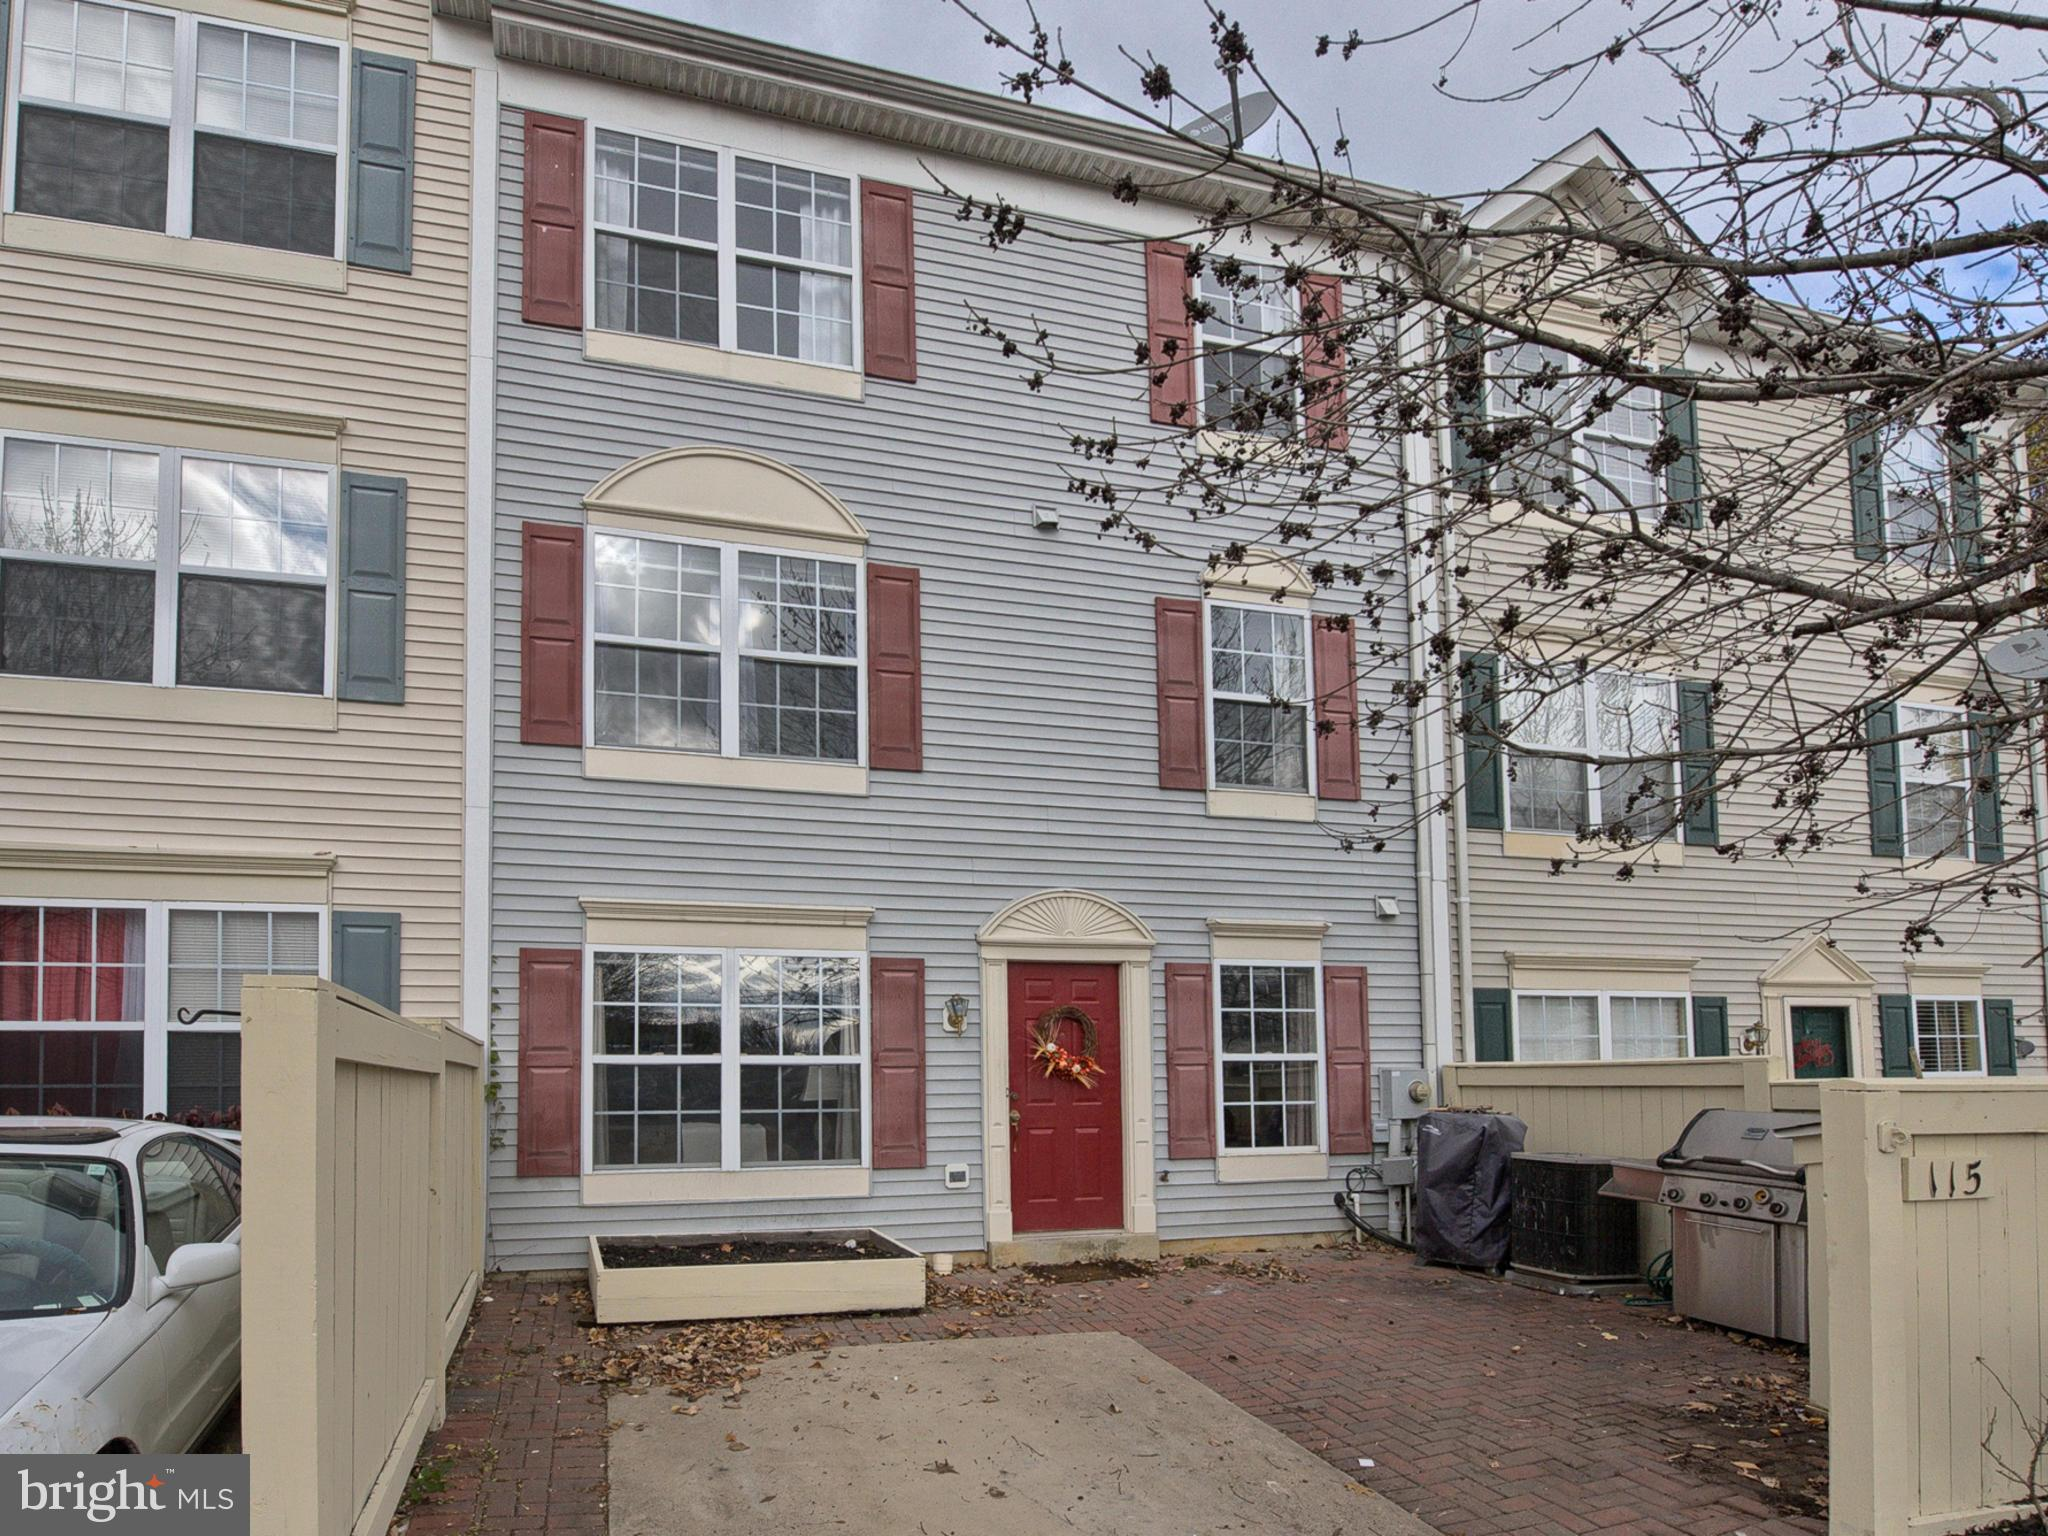 Just what you're looking for! Affordable townhome with new carpet, large master bedroom with private bathroom and walk in closet on its own floor. Community pool within walking distance! Just minutes from Fort Detrick and Historic Downtown Frederick. Close to shopping, dining, Museums, Monocacy Battlefield, County Parks, and more!